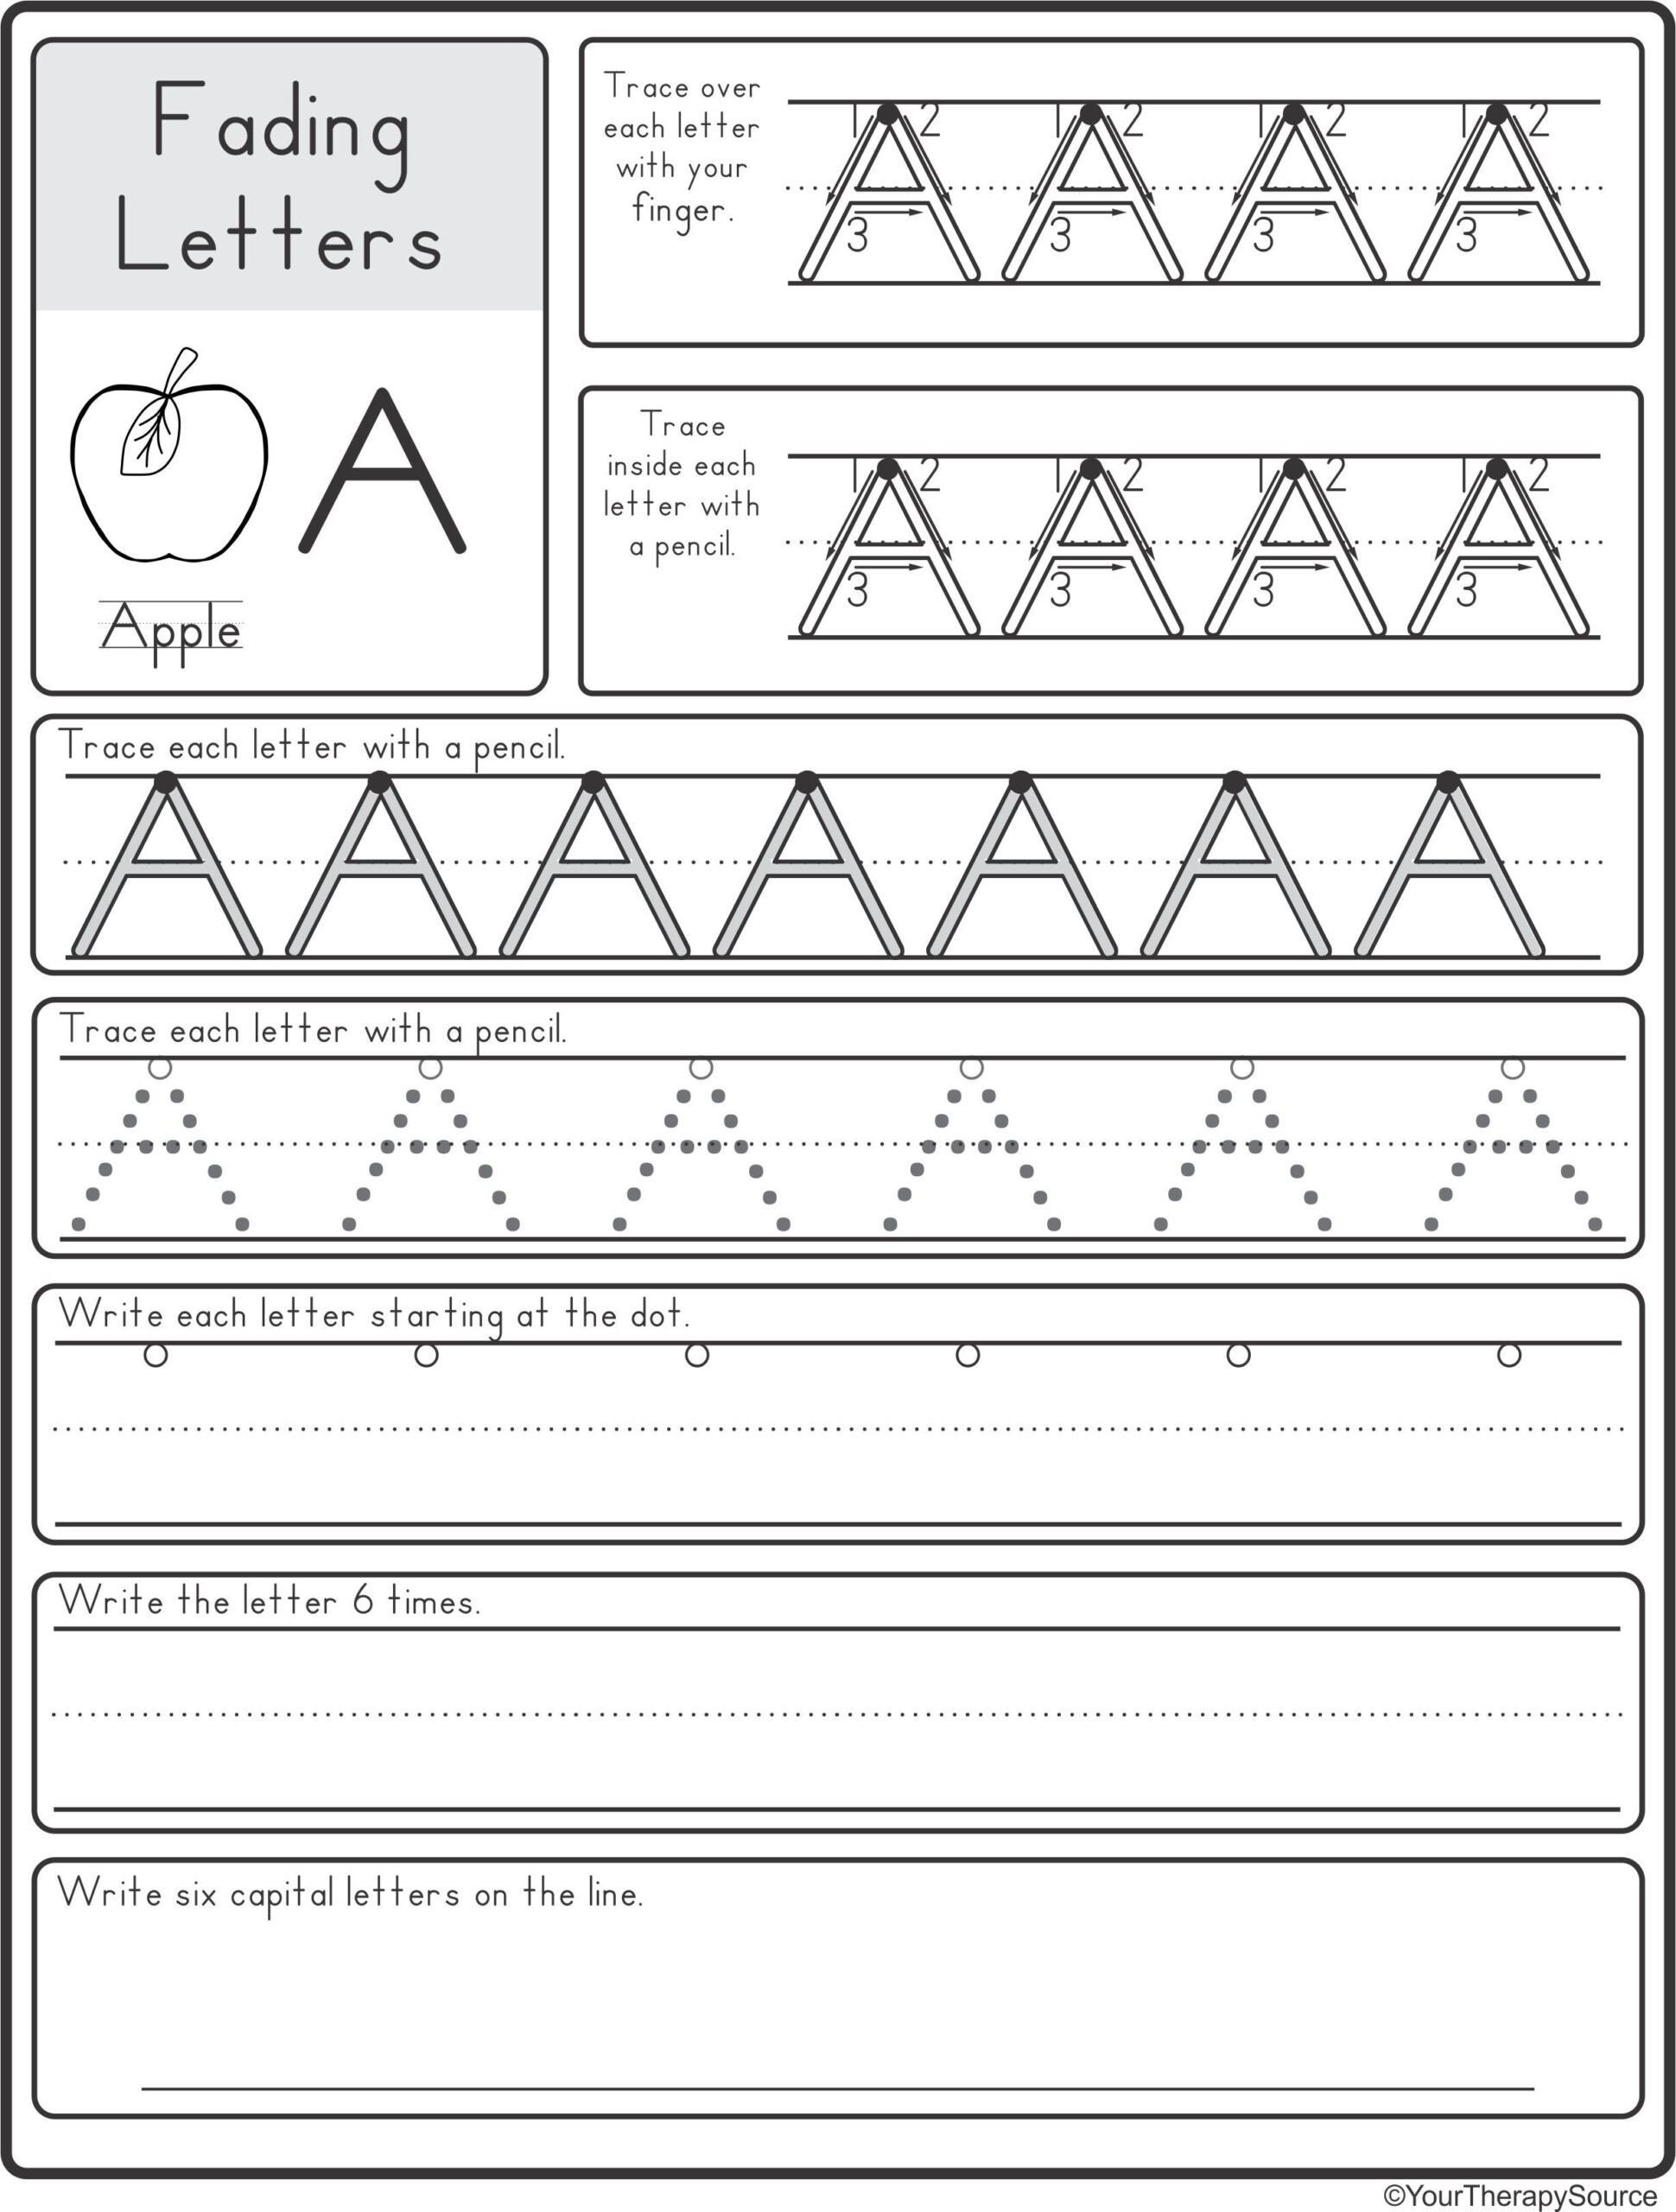 Fading Alphabet Double Line Or Dotted Line Style | Learn with Tracing Dotted Letters Worksheets